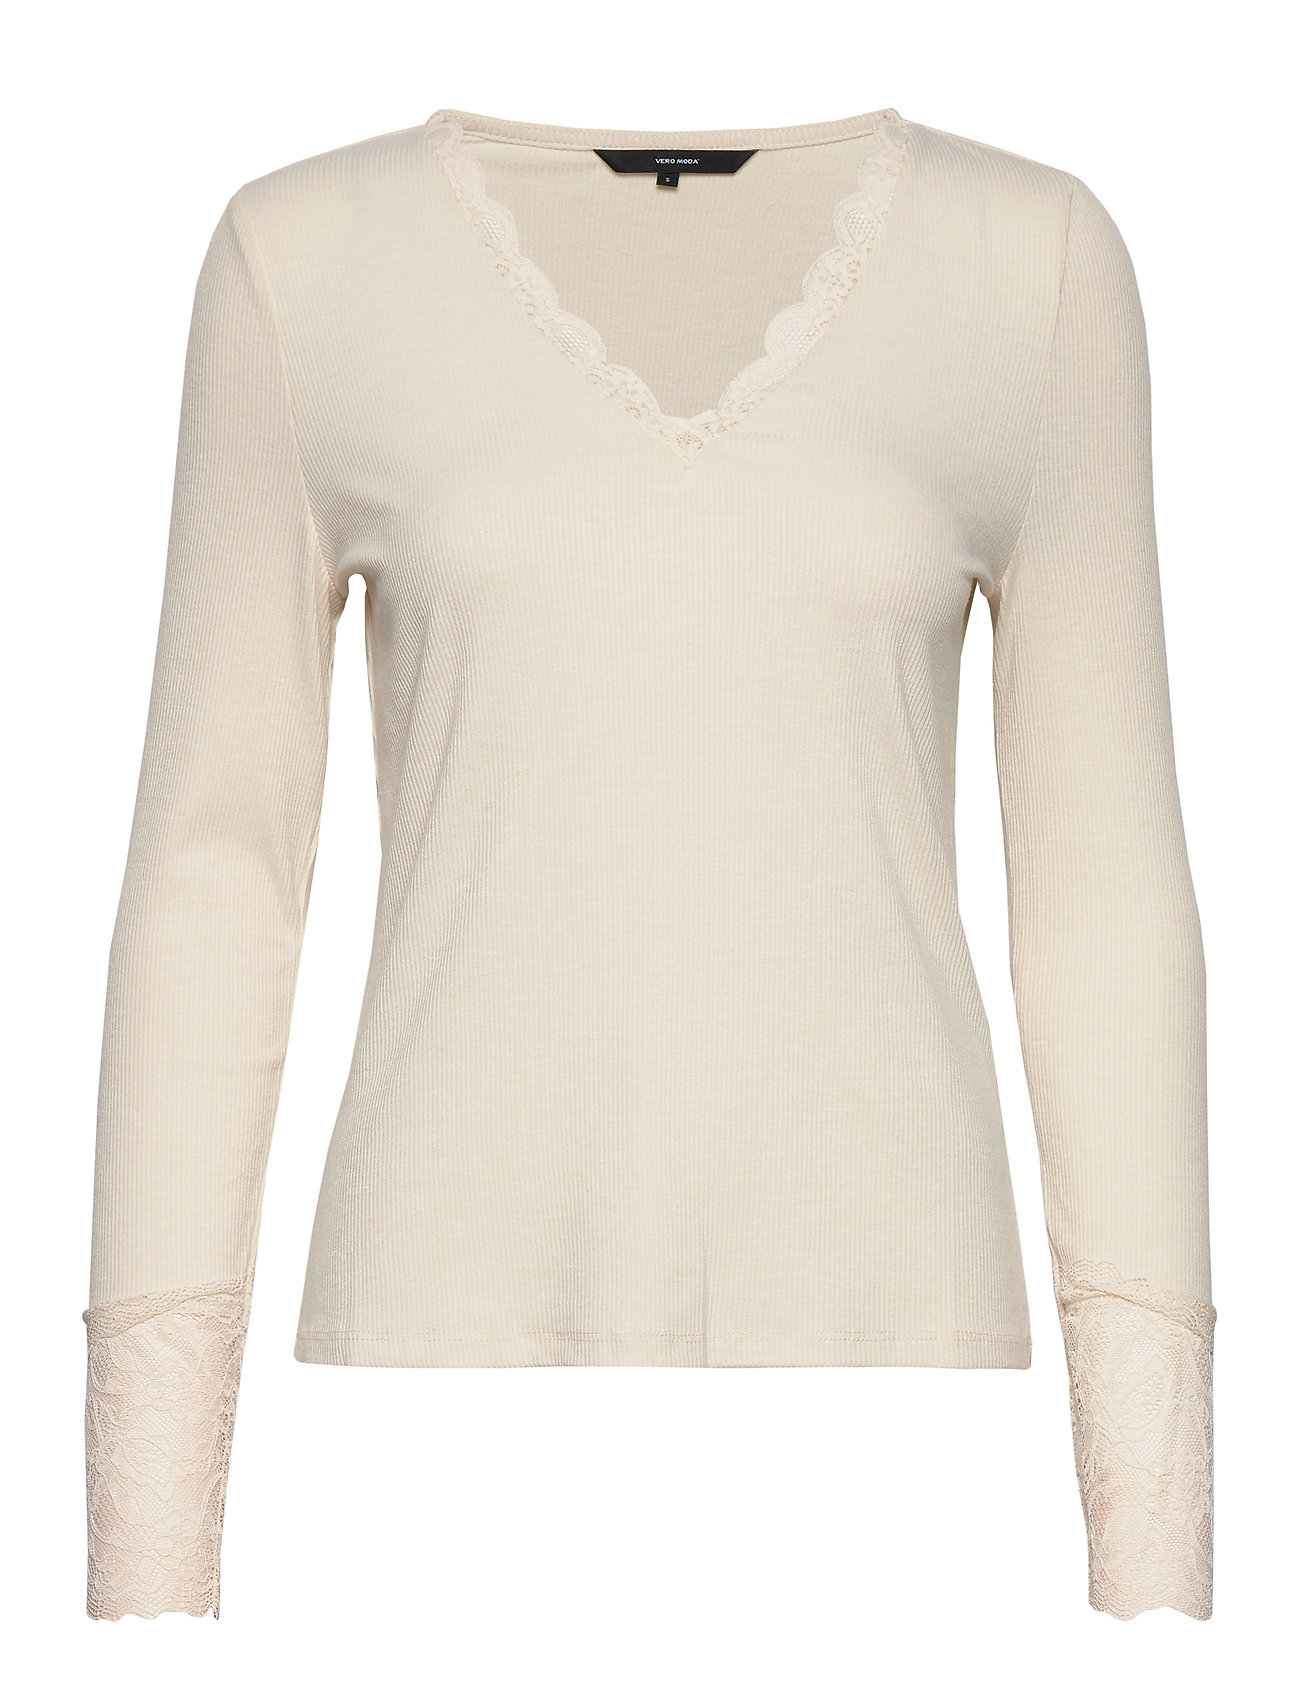 Vero Moda VMANJA LS LACE TOP JRS - BIRCH